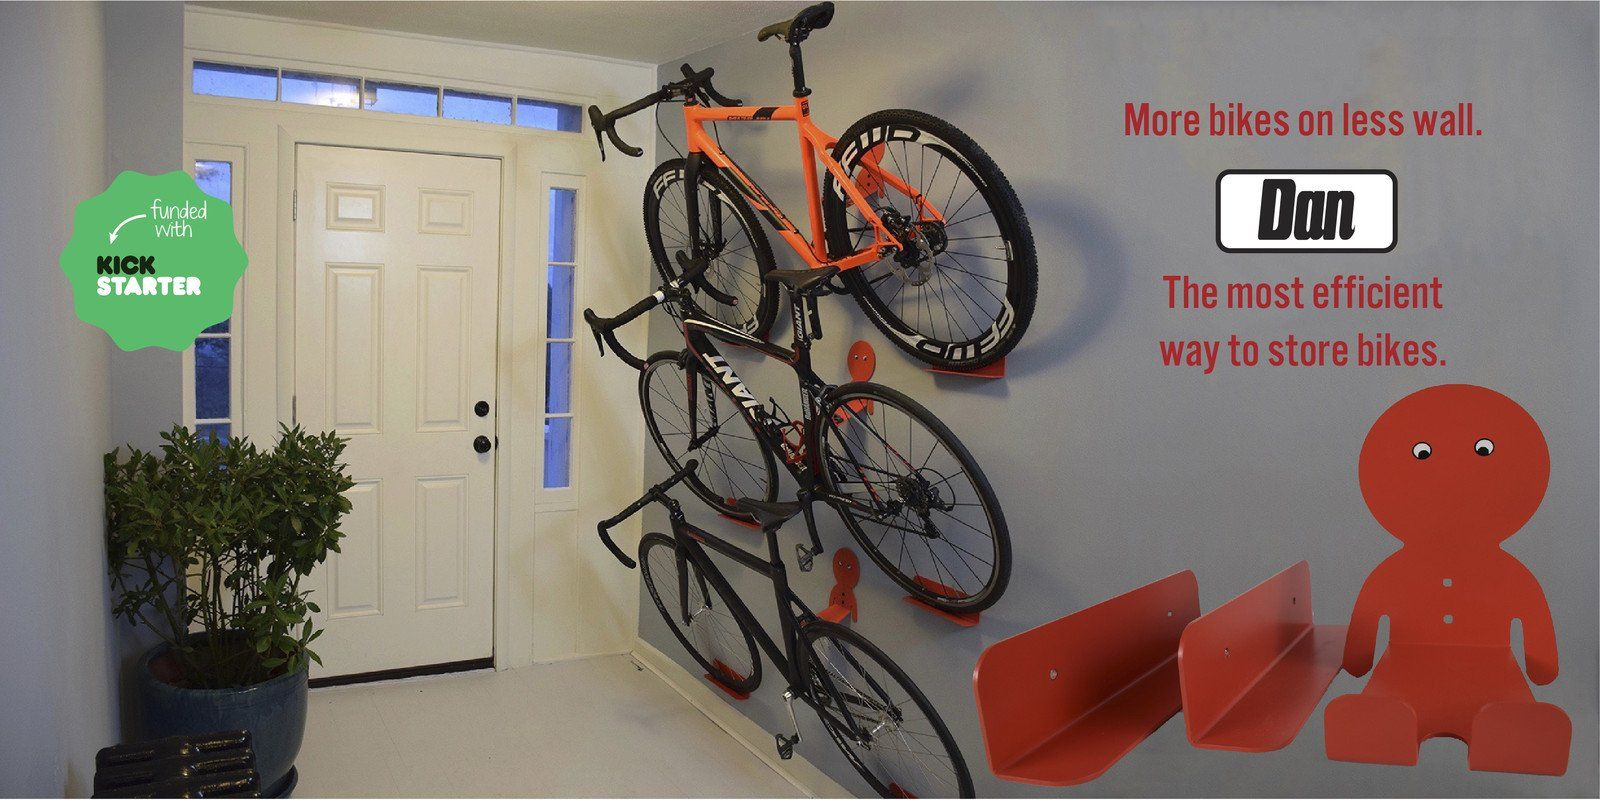 Bike Wall Mount And Cycling Storage Solutions. Modern And Fun Bicycle Racks  That Look Awesome With Or Without Bike. Space Saving Pedal Hooks For  Multiple ...